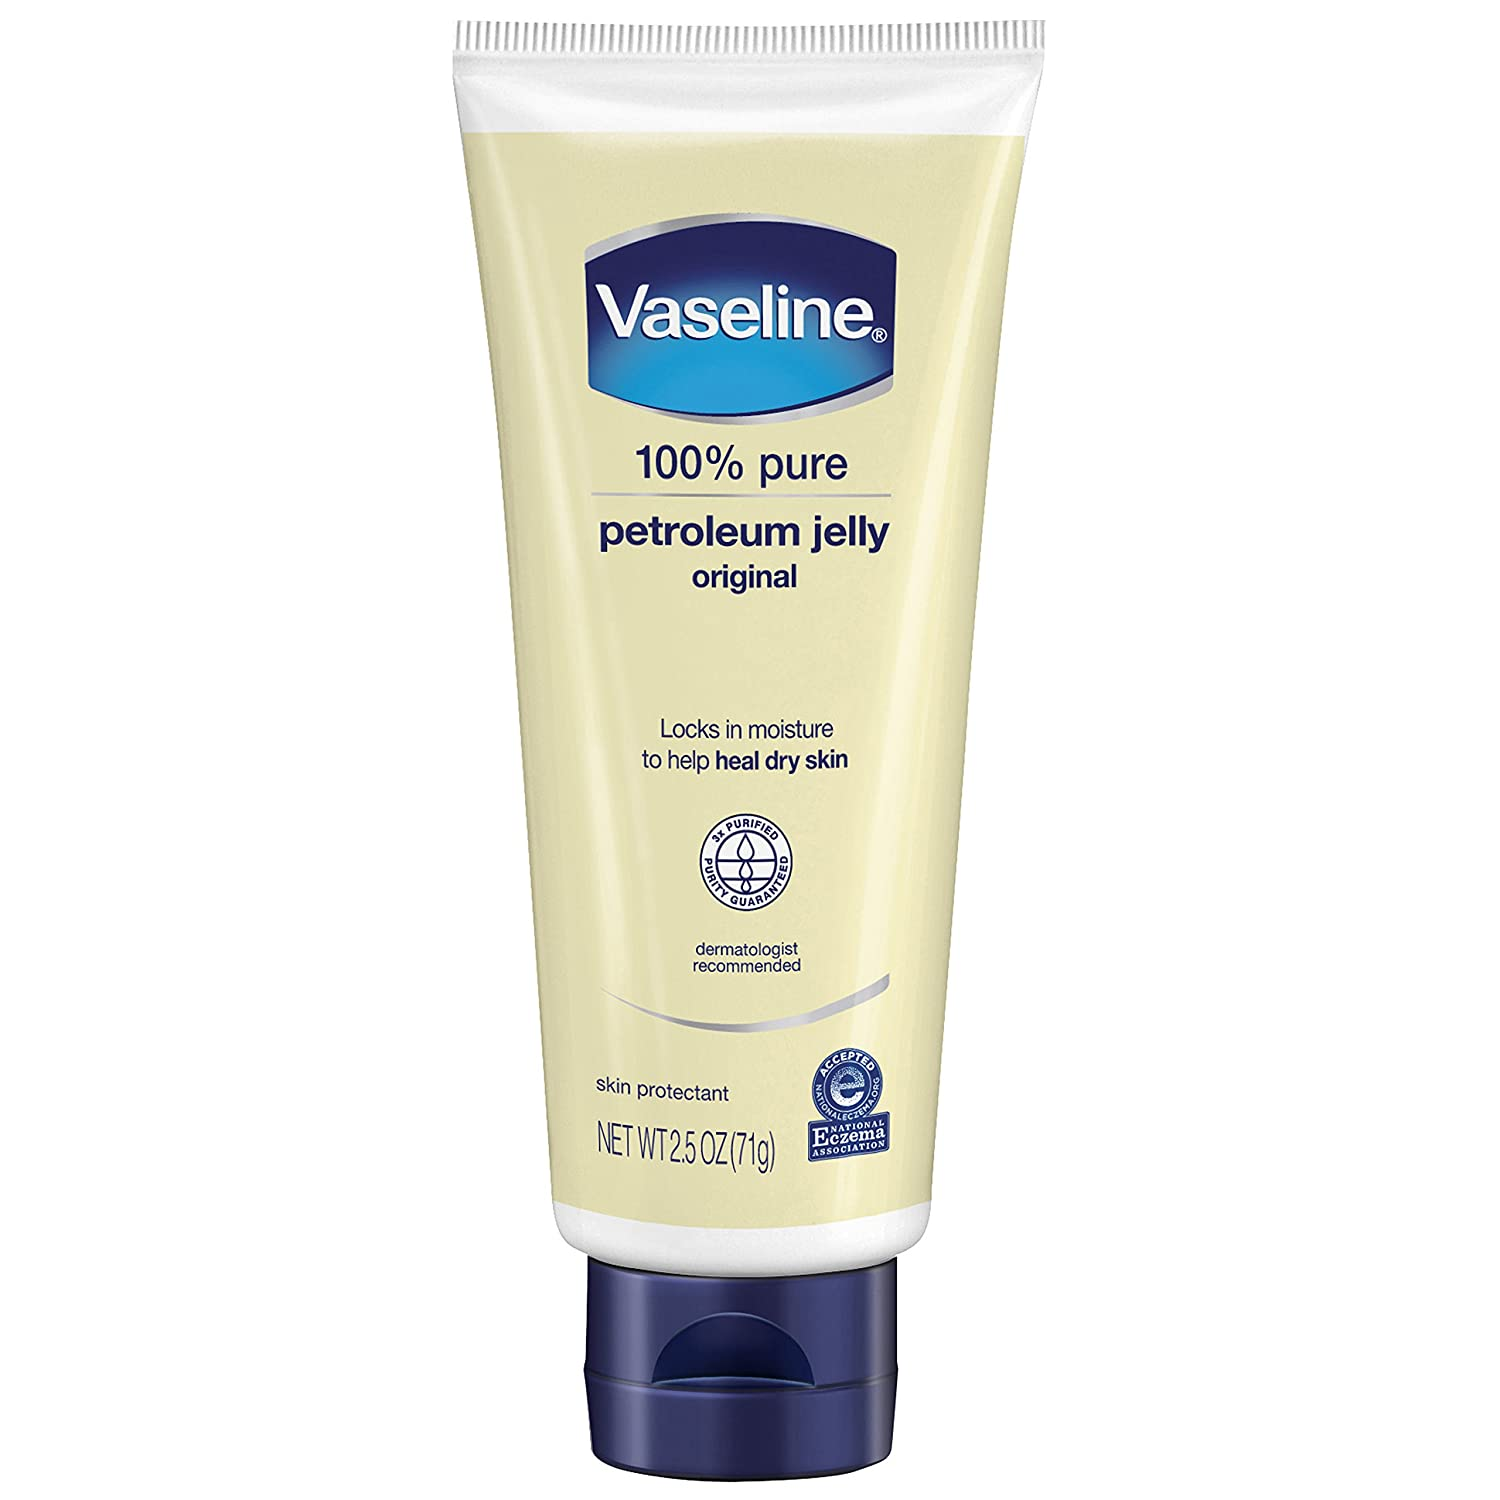 Petroleum jelly and sex